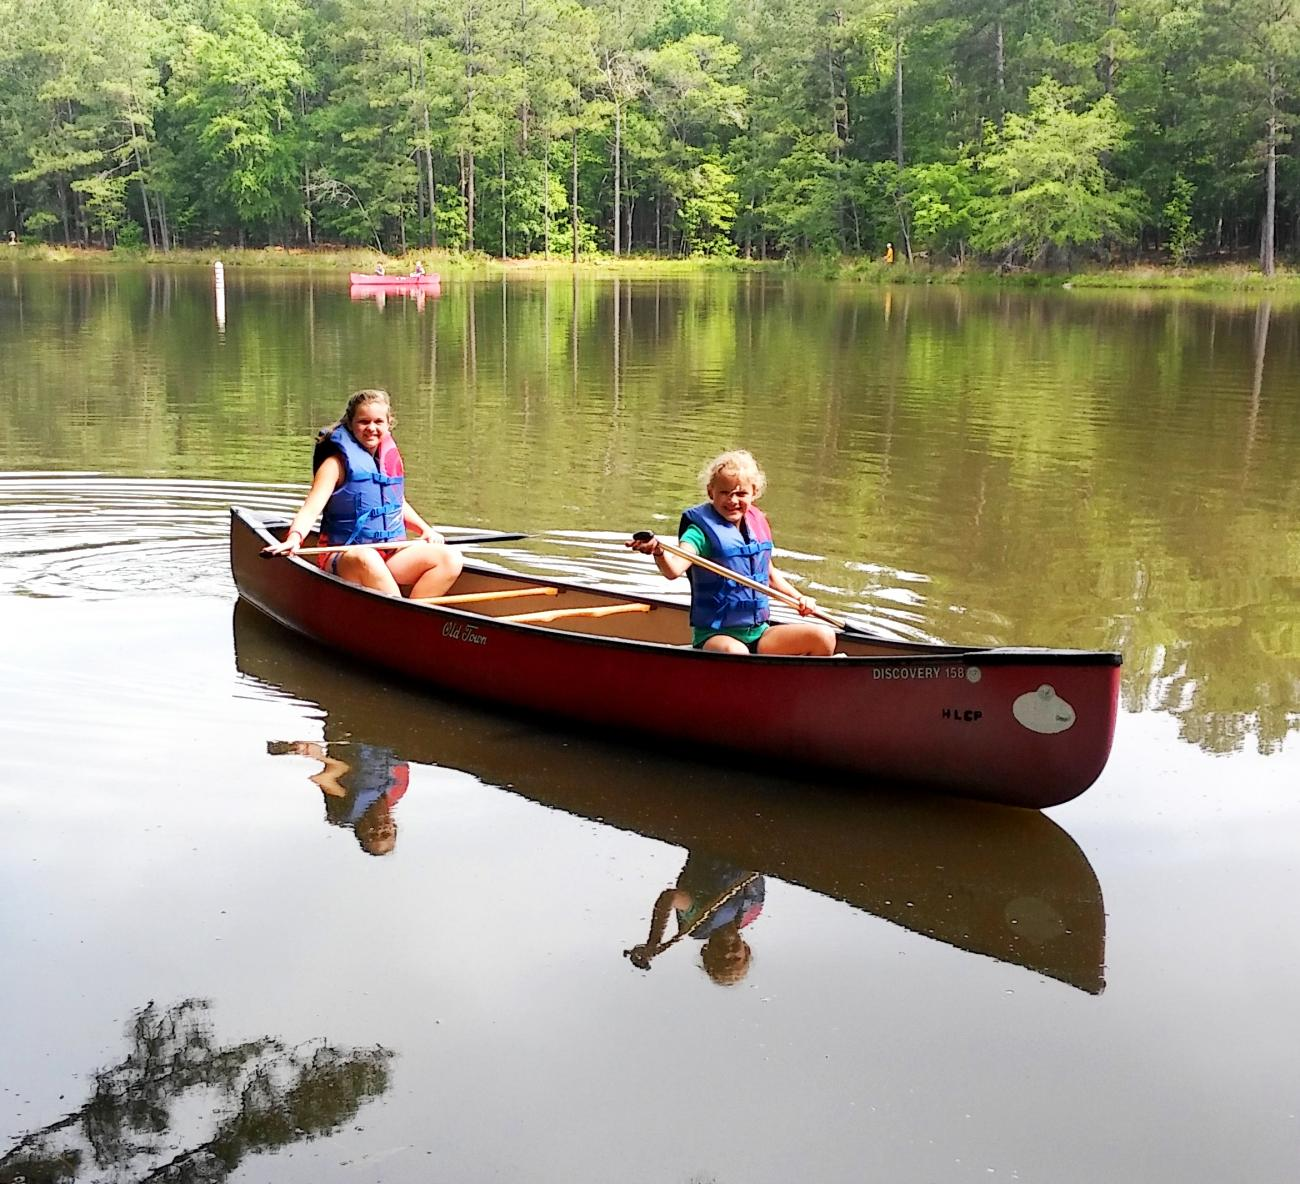 Photo of two campers in a canoe on the fishing pond